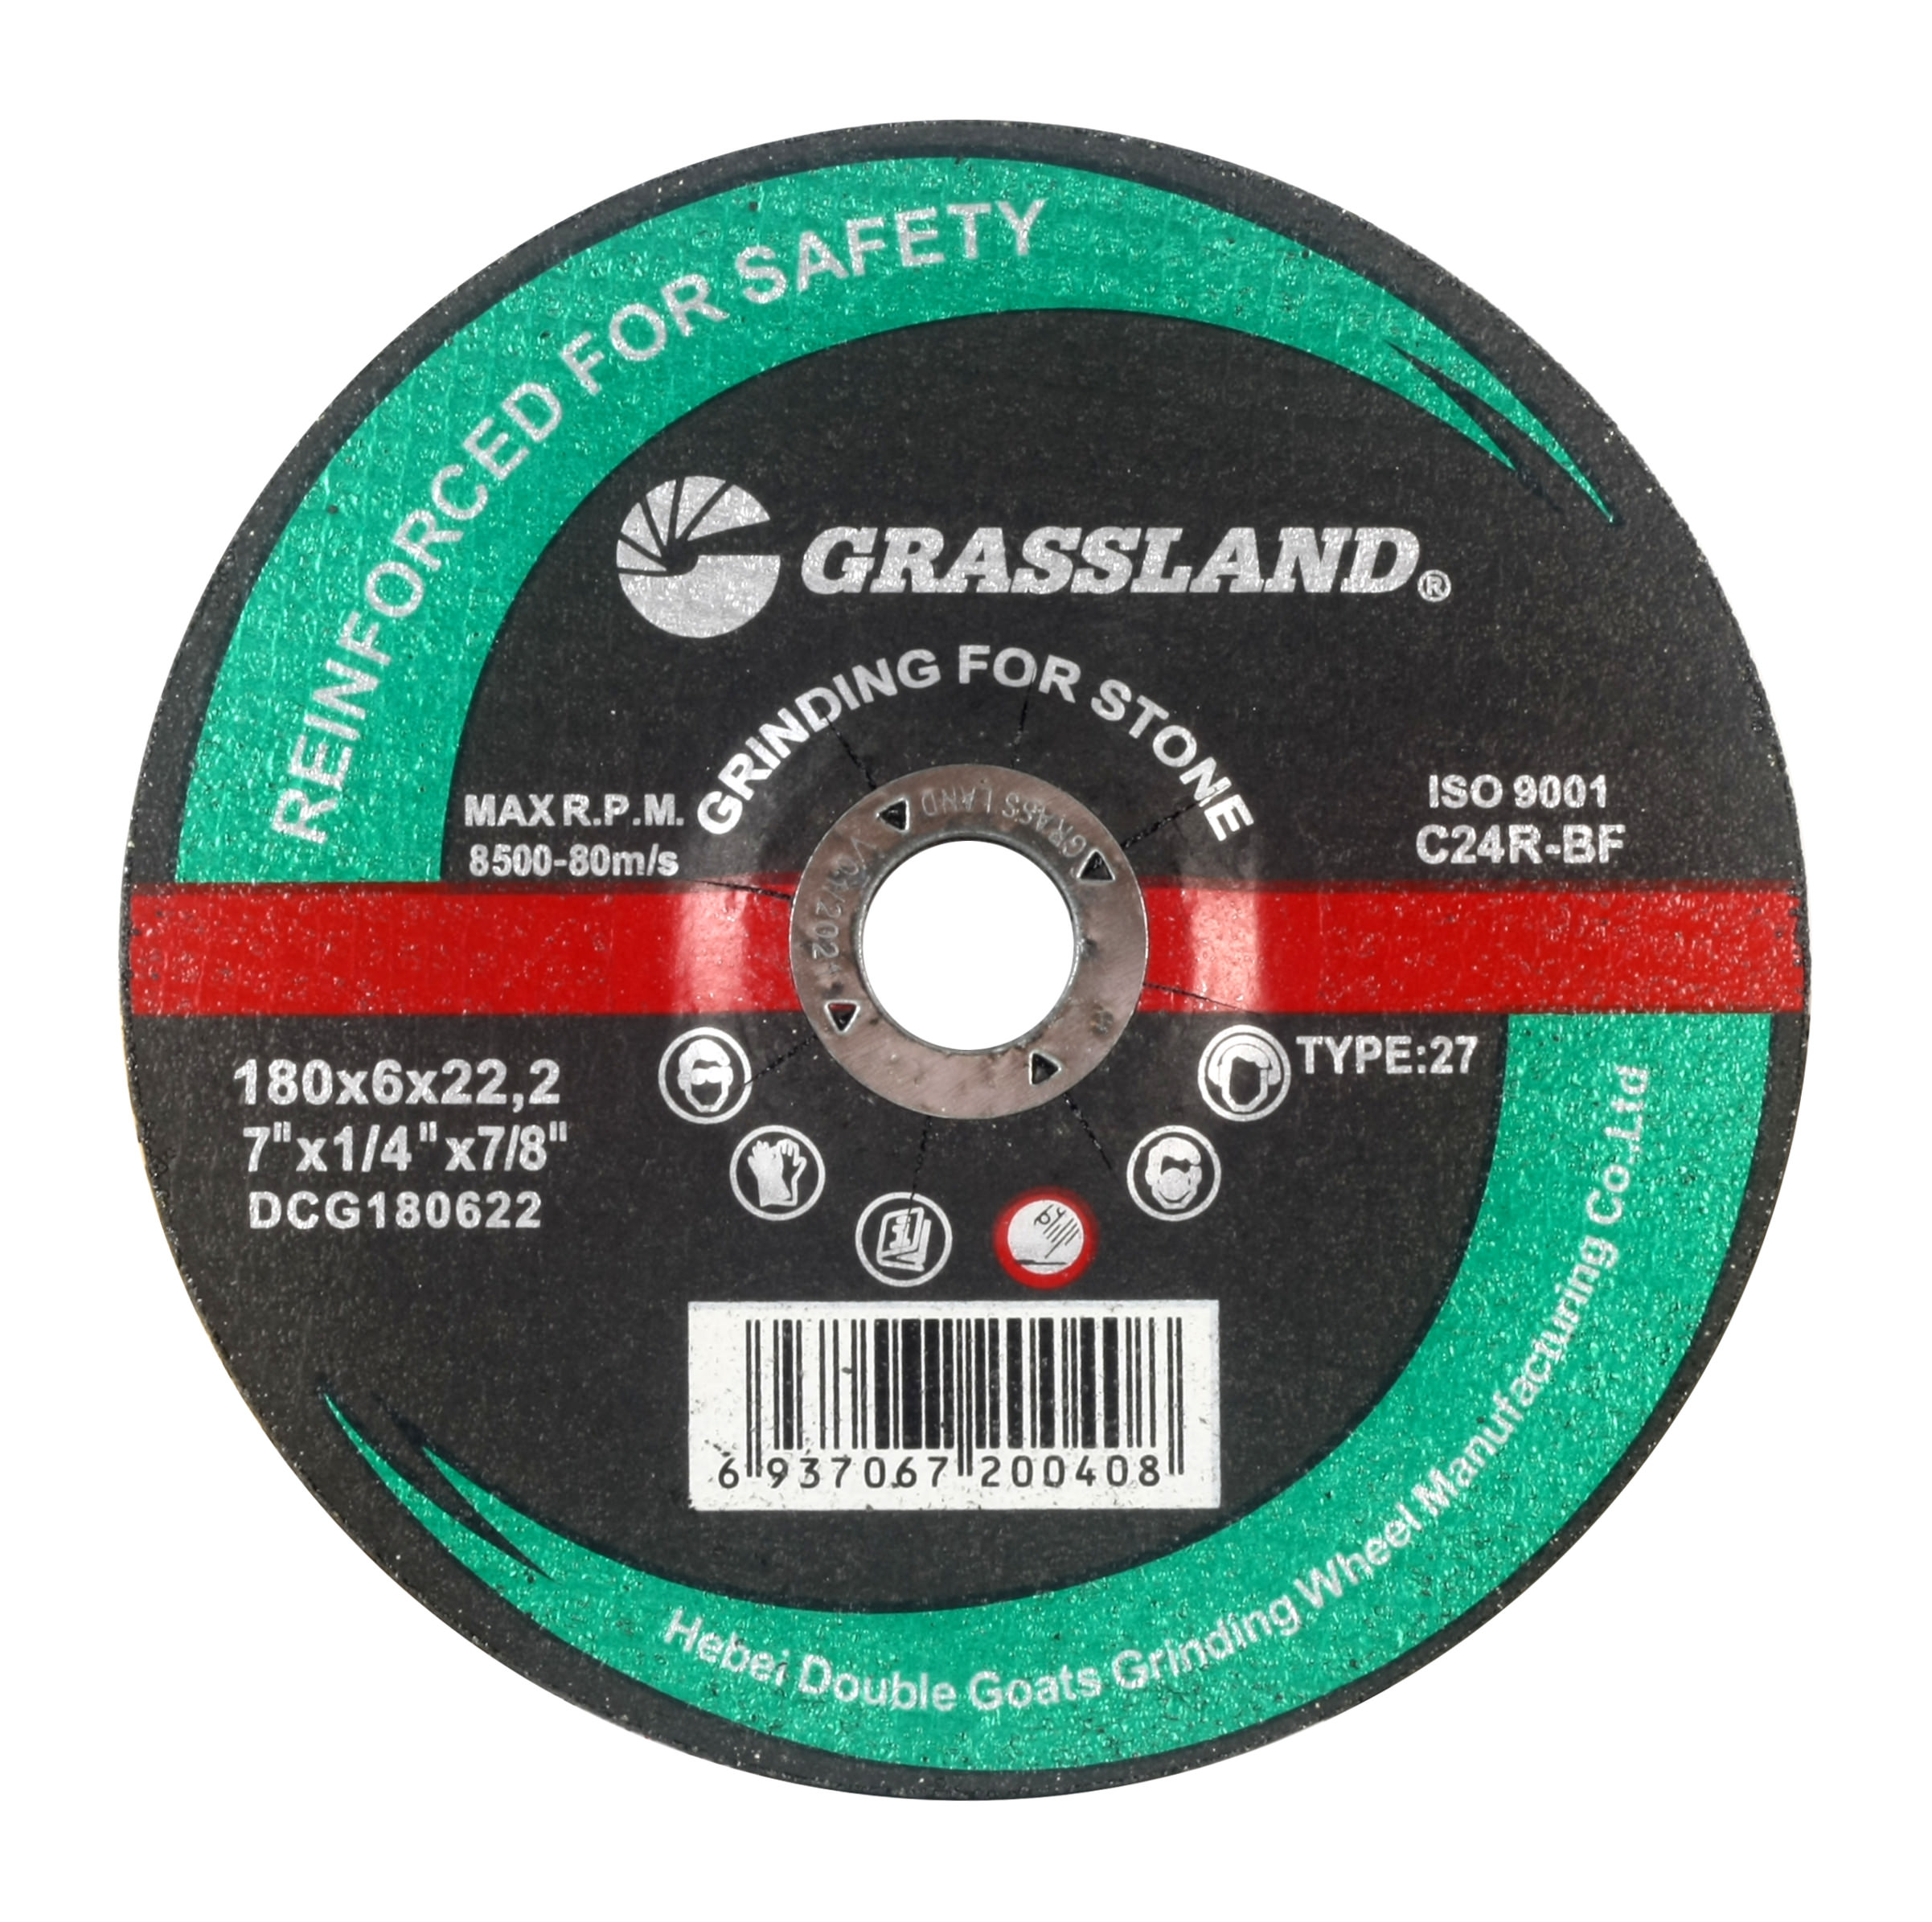 "Grinding Disc, Concrete/Masonry/Stone Grinding wheel - 7"" x 1/4"" x 7/8"" - T27 - (5 PACK)"